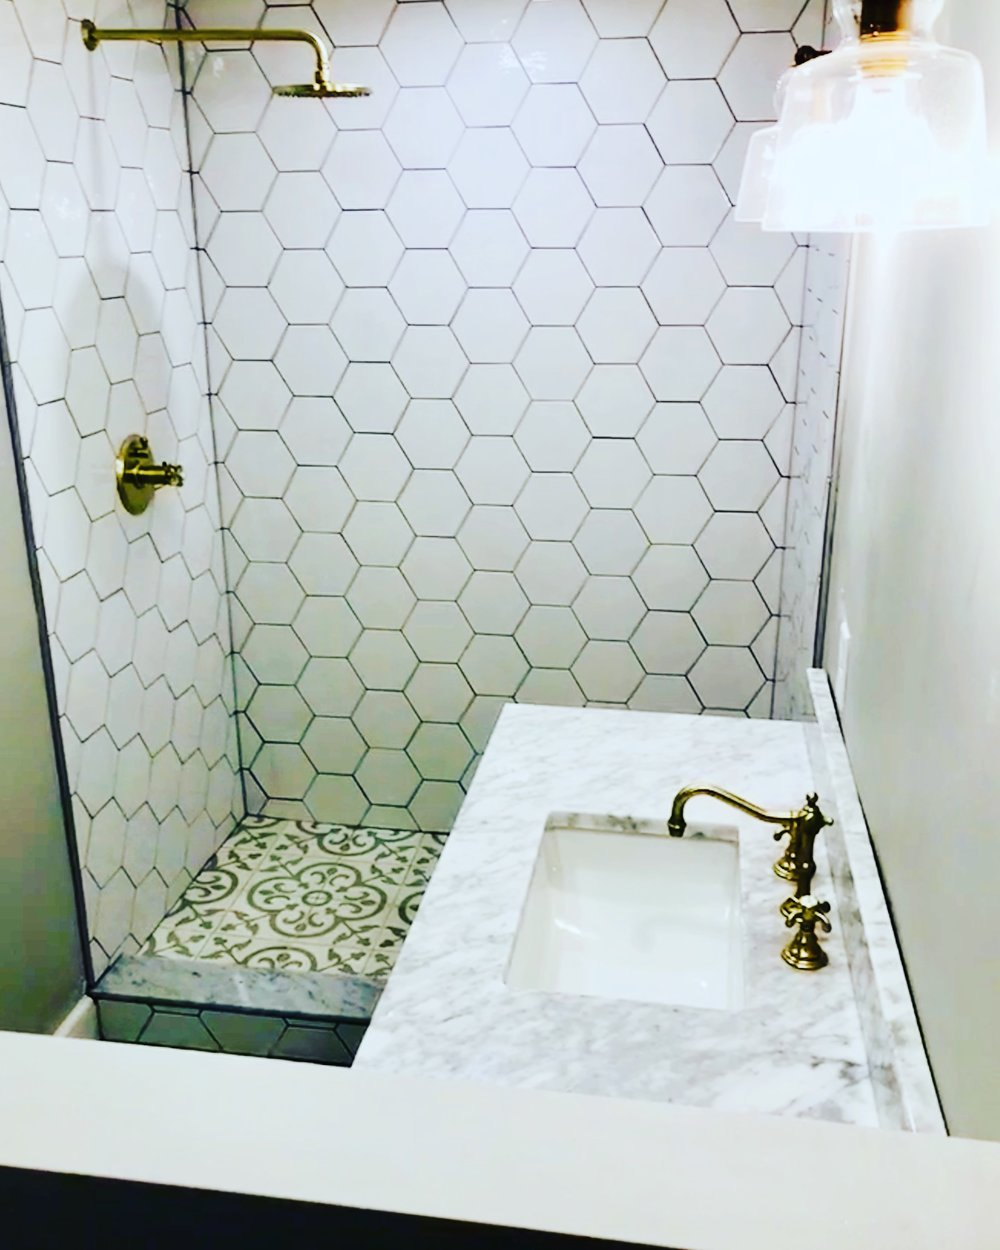 Concrete floor tiles, hexagonal wall tiles in ceramic and brushed brass fixtures.